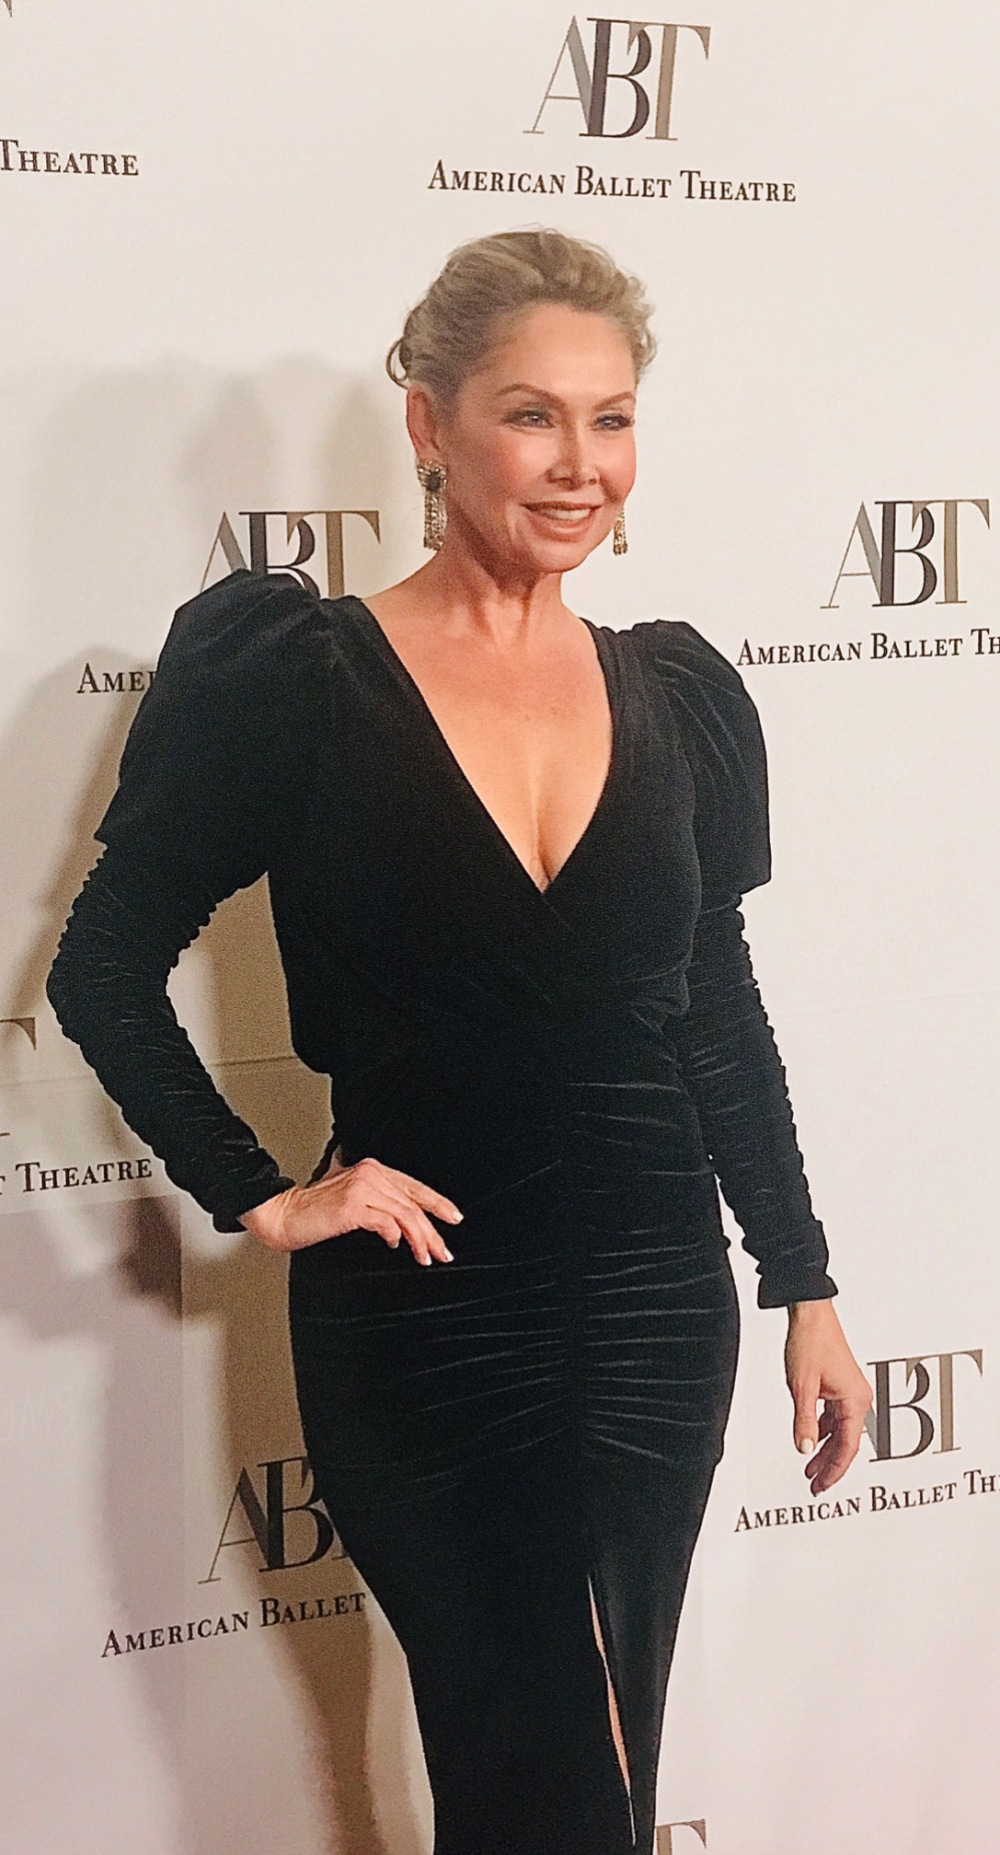 IMG_2450 Dancer Kym Johnson Herjavec – Photo Jill Weinlein